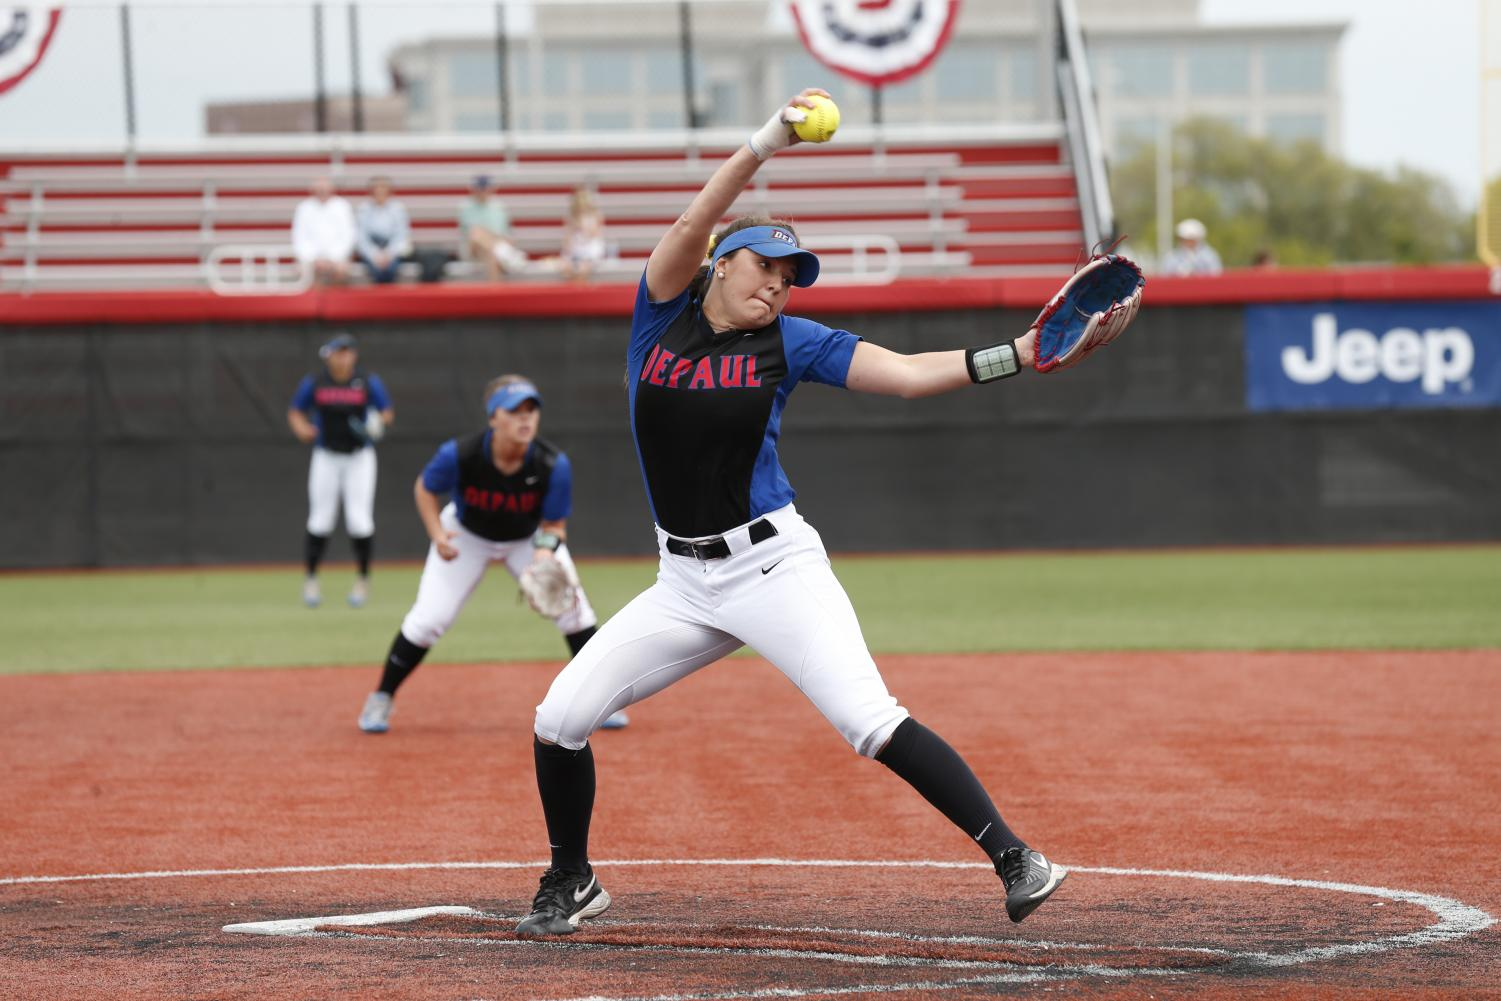 Sophomore pitcher Missy Zoch tossed all 10 innings in DePaul's extra-innings loss to St. Johns Sunday. (Steve Woltmann | DePaul Athletics)